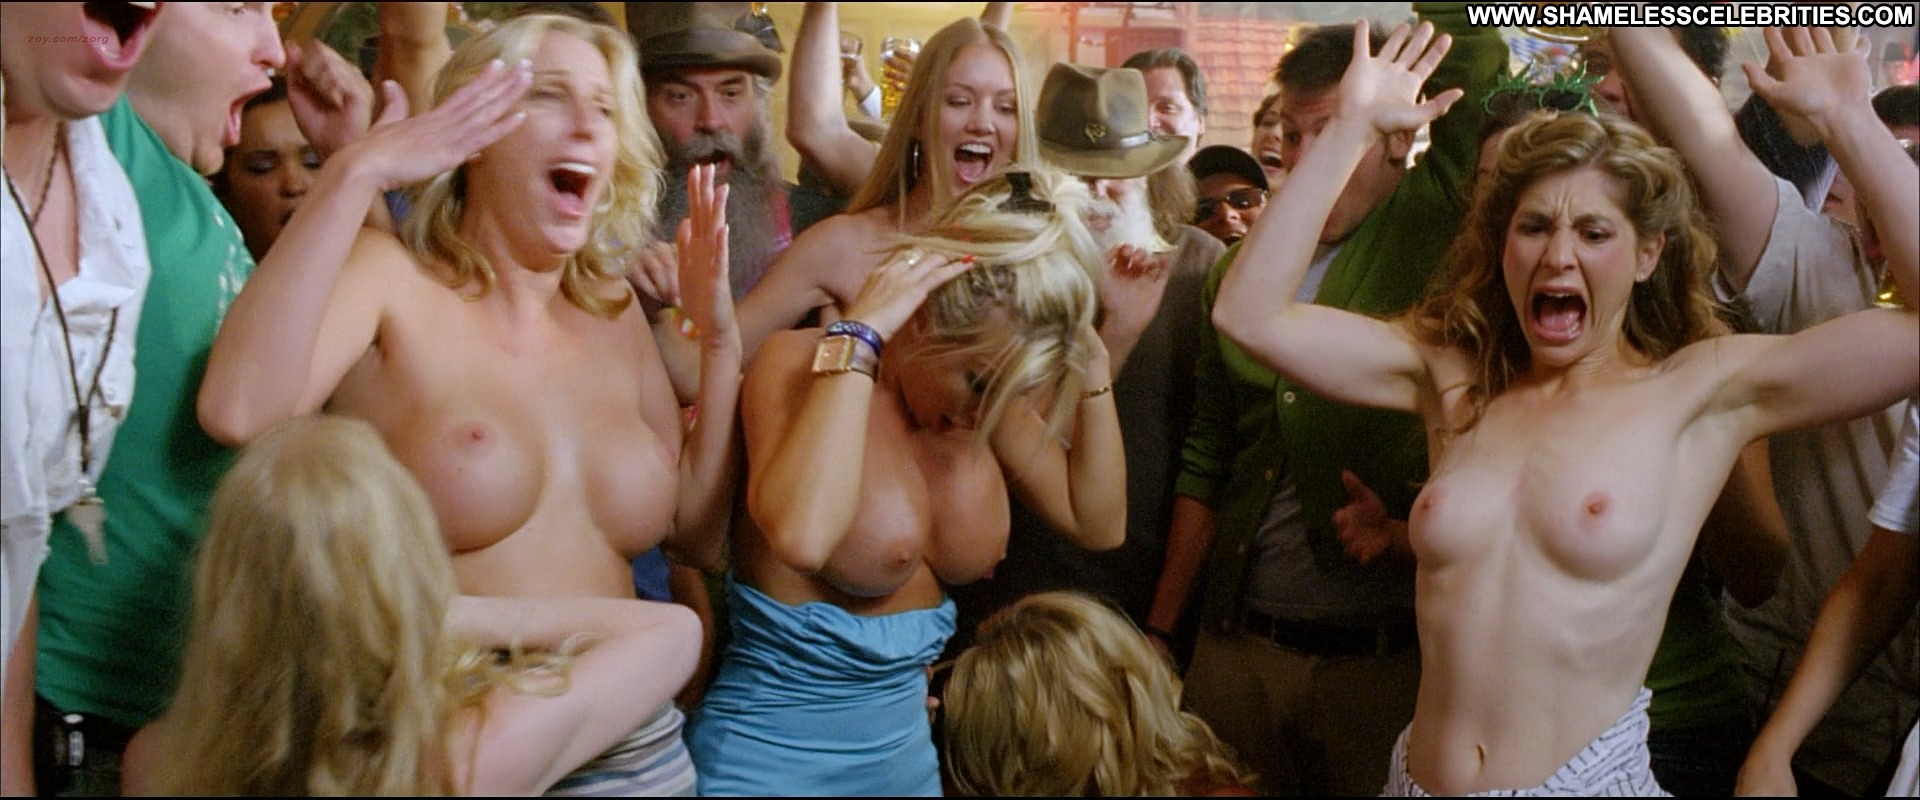 candace smith sex scene in beerfest